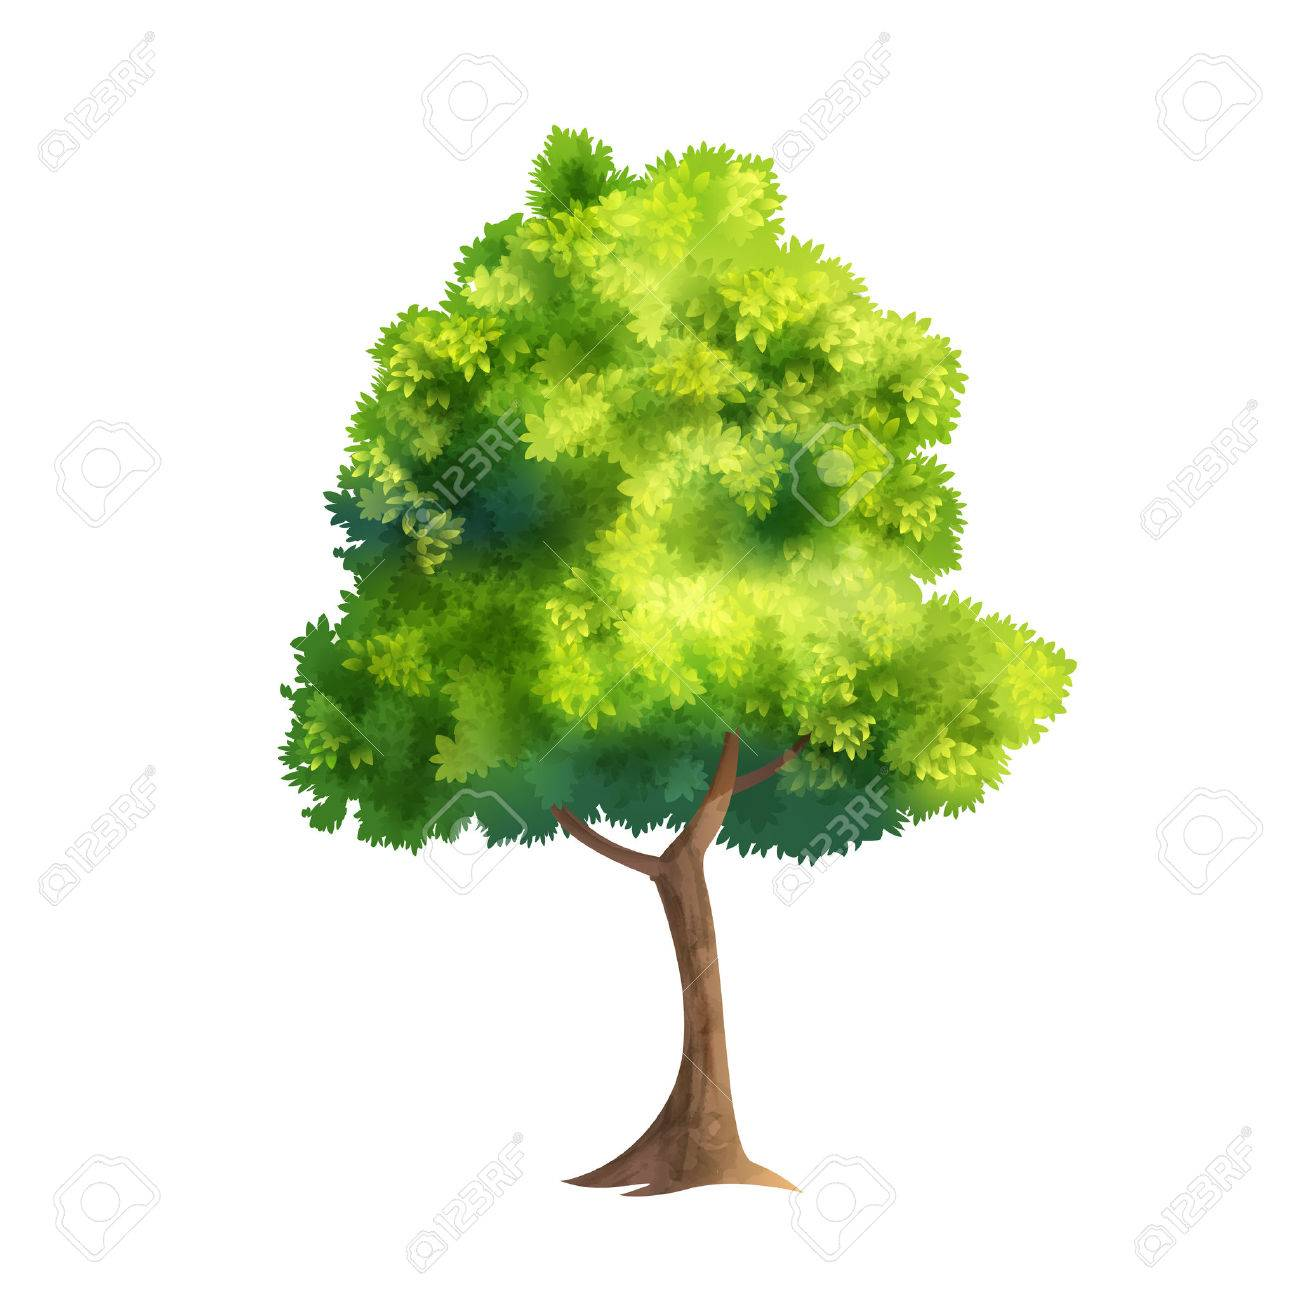 Color Vector Illustration Of Big Tree With Fresh Leaves Isolated On White - 61706363